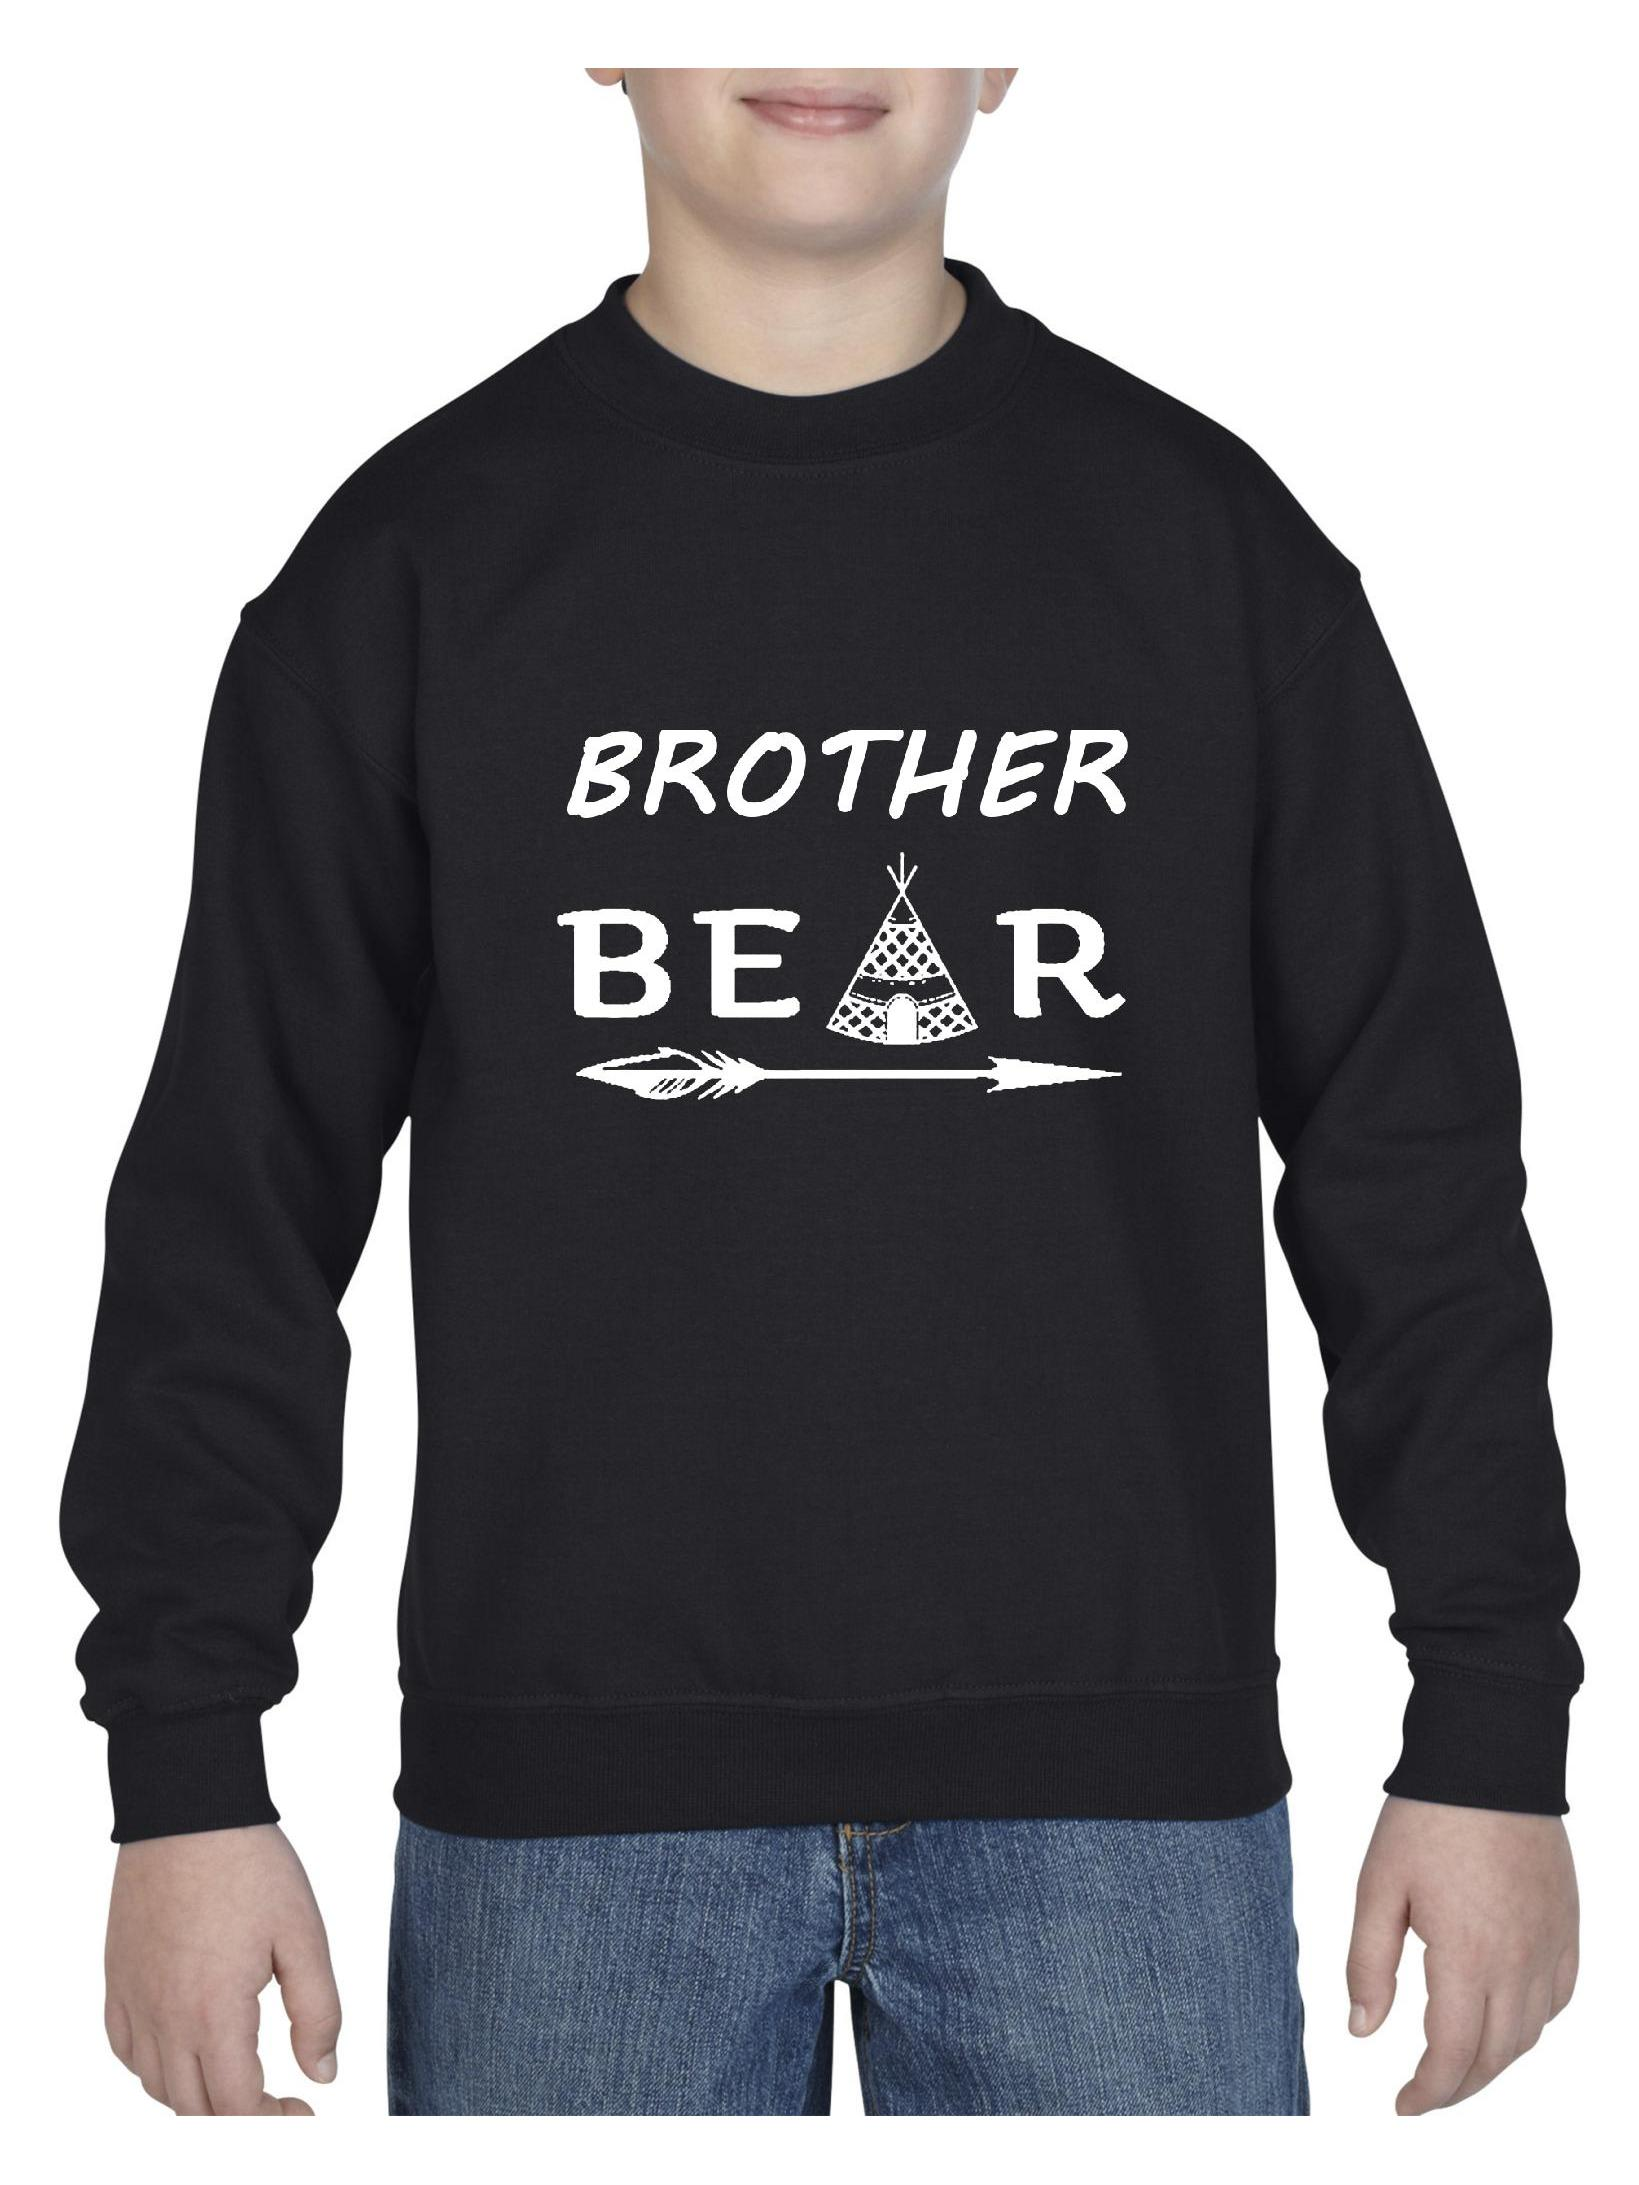 Brother Bear Unisex Youth Crewneck Sweatshirt